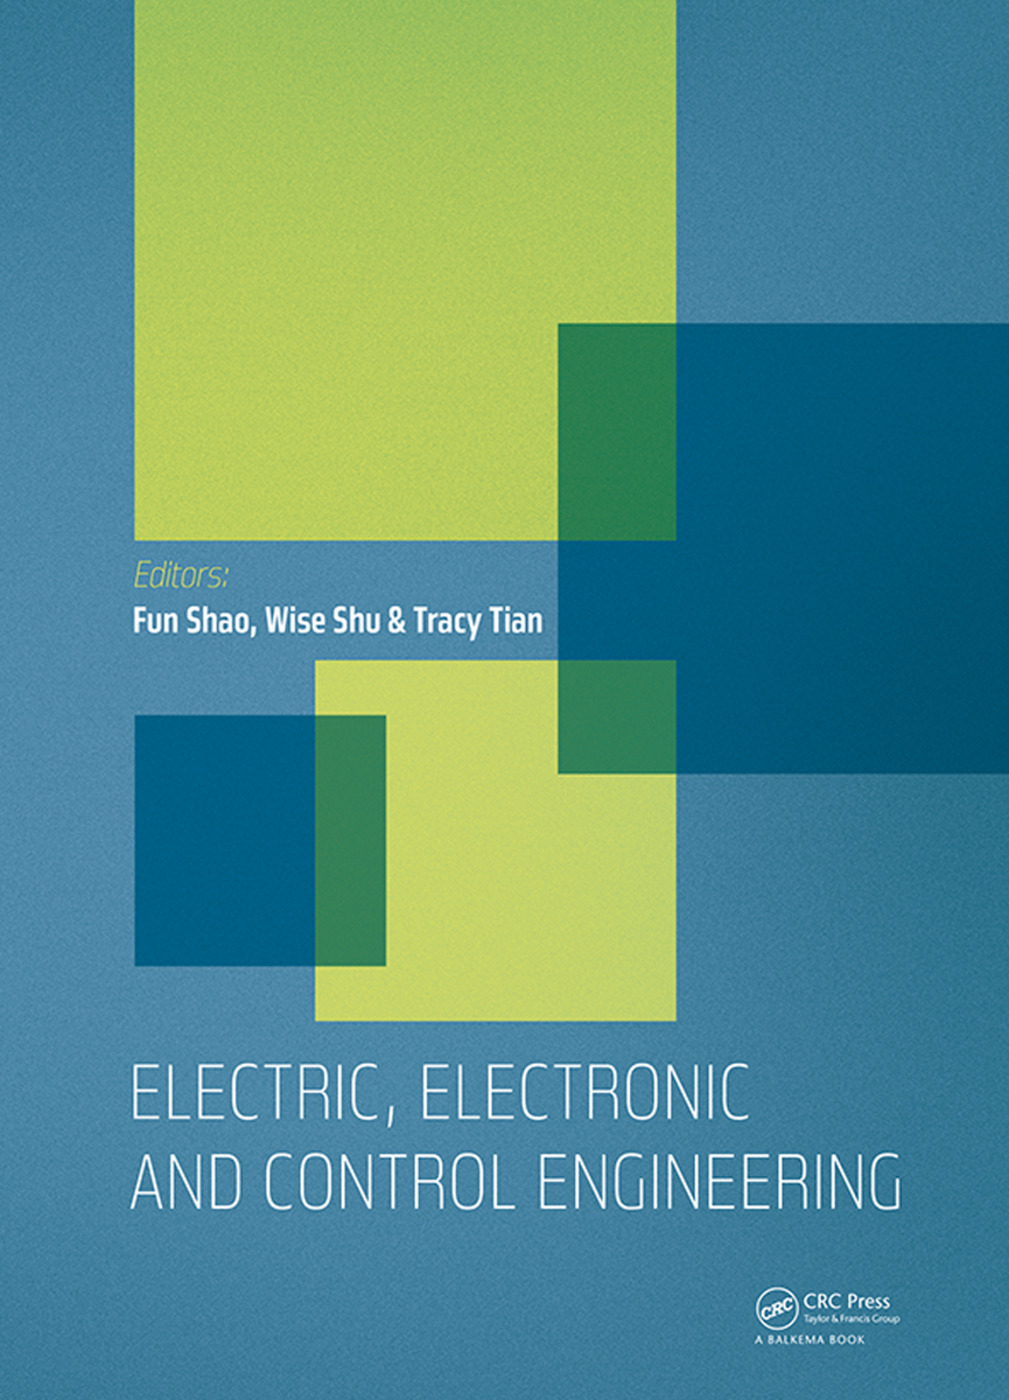 Electric, Electronic and Control Engineering: Proceedings of the 2015 International Conference on Electric, Electronic and Control Engineering (ICEECE 2015), Phuket Island, Thailand, 5-6 March 2015, 1st Edition (Hardback) book cover